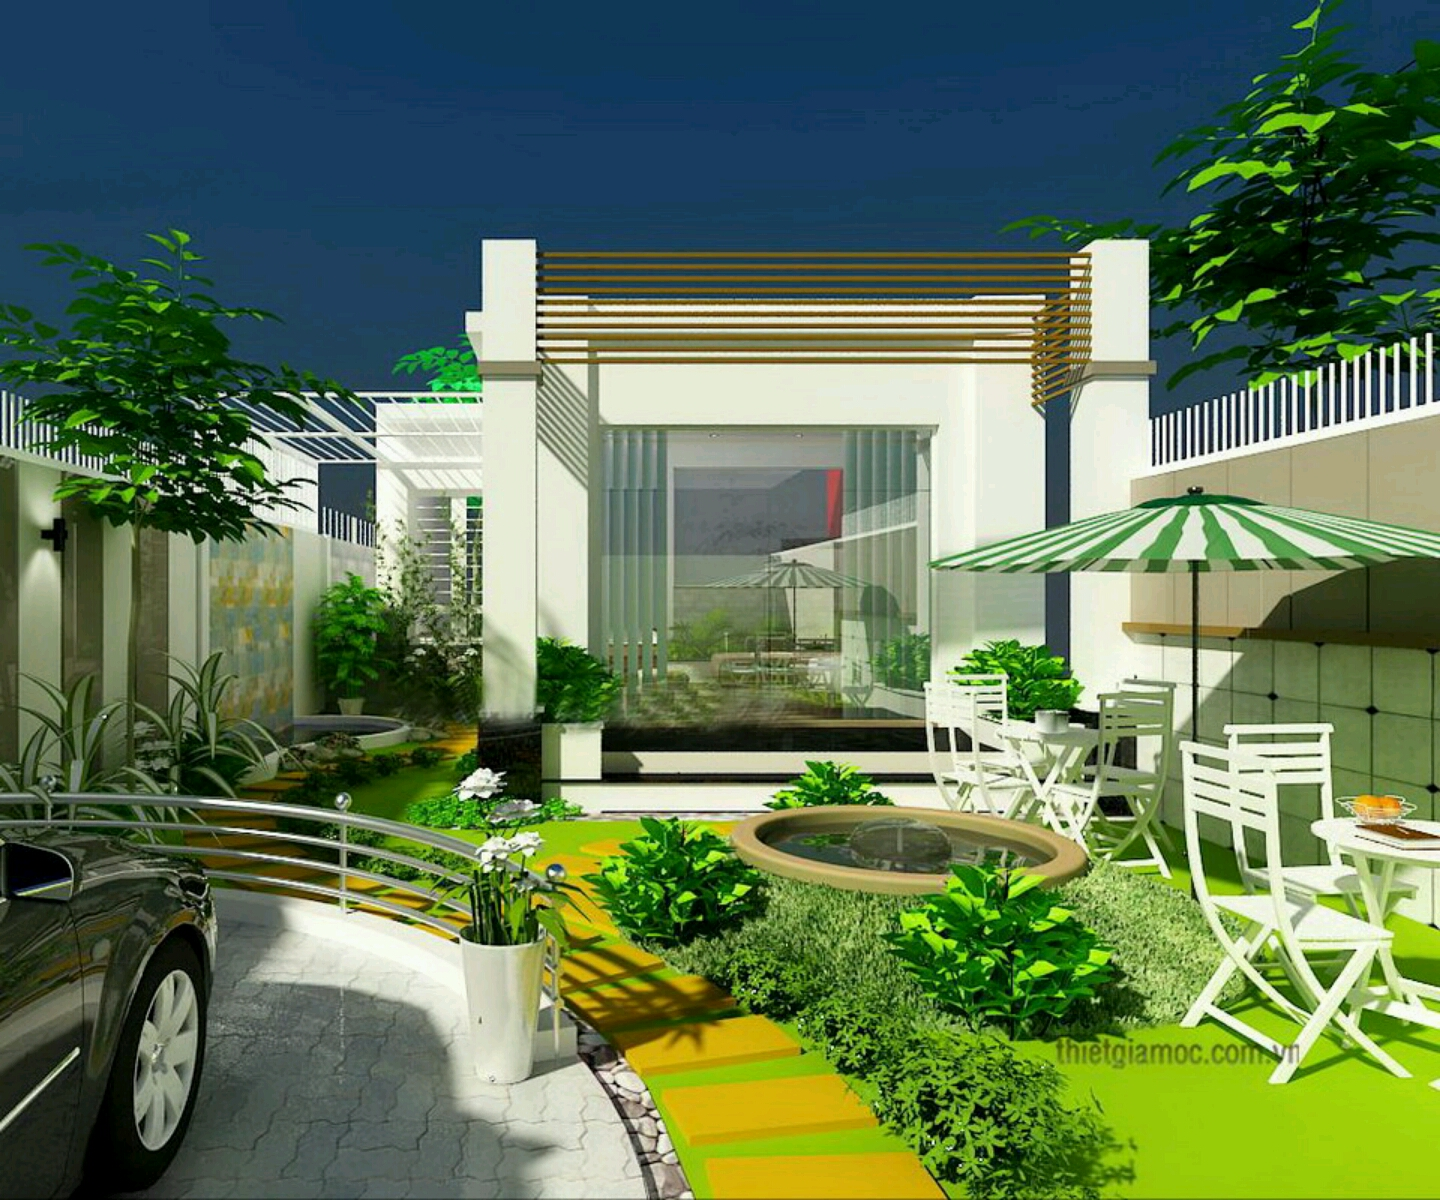 Modern homes beautiful garden designs ideas new home designs New ideas in home design